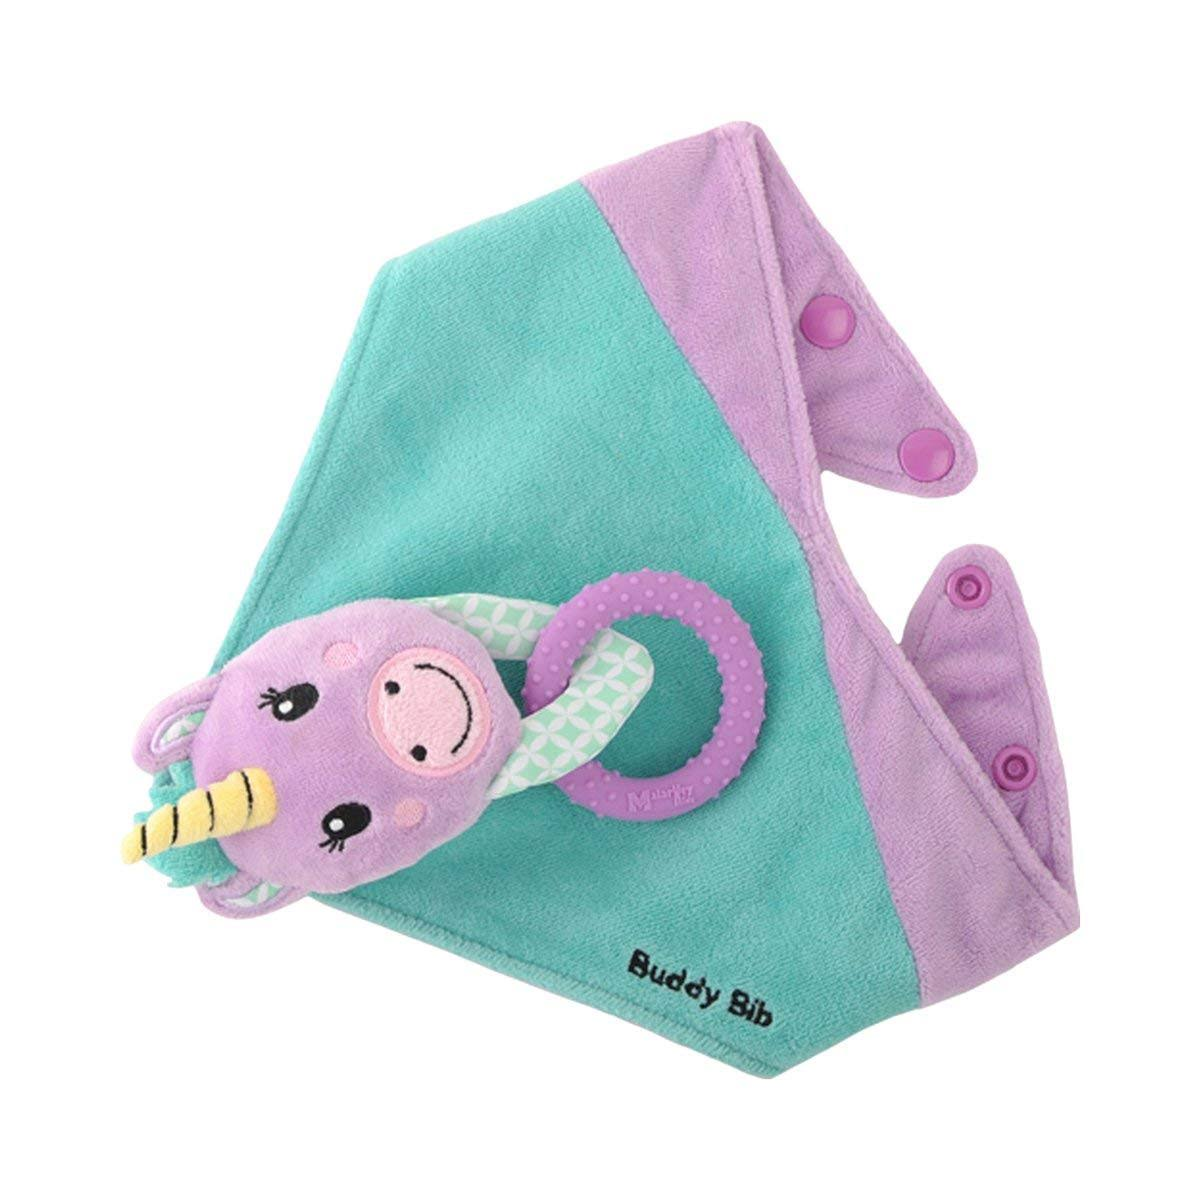 Buddy Bib Unice Unicorn 3 In 1 Bandana Drool Bib